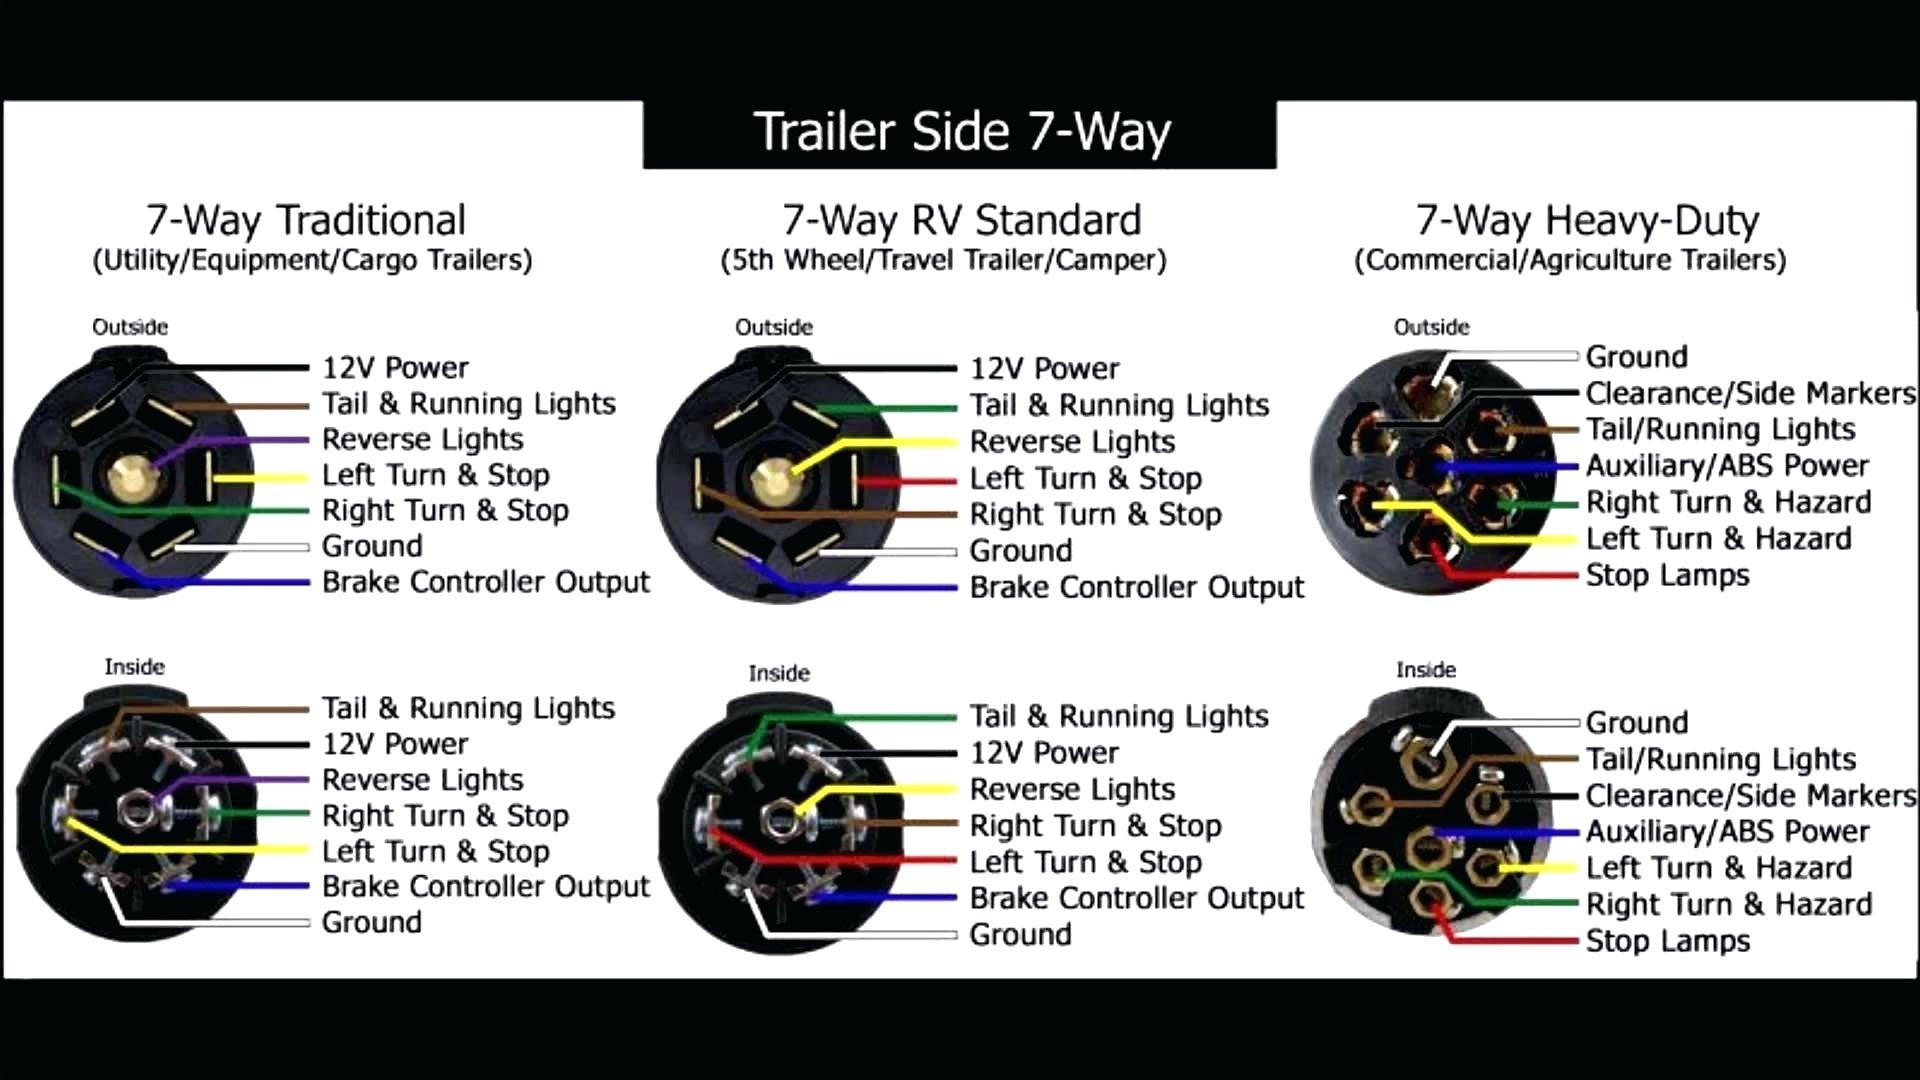 Way Heavy Duty Trailer Plug Wiring Diagram on chevy 7-way trailer wiring diagram, ford trailer brake controller wiring diagram, 7-way trailer light diagram, 7-wire rv plug diagram, seven way trailer wiring diagram, 7 way trailer plug cover, 7-way blade wiring diagram, 7 way trailer plug installation, horse trailer wiring diagram, 7 way trailer hitch wiring diagram, trailer light plug diagram, 4 way trailer wiring diagram, seven way trailer plug diagram, 7-way connector wiring diagram, 7 pronge trailer connector diagram, 7 way trailer plug dimensions, phillips 7-way wiring diagram, seven wire trailer wiring diagram, 7 way trailer plug ford,